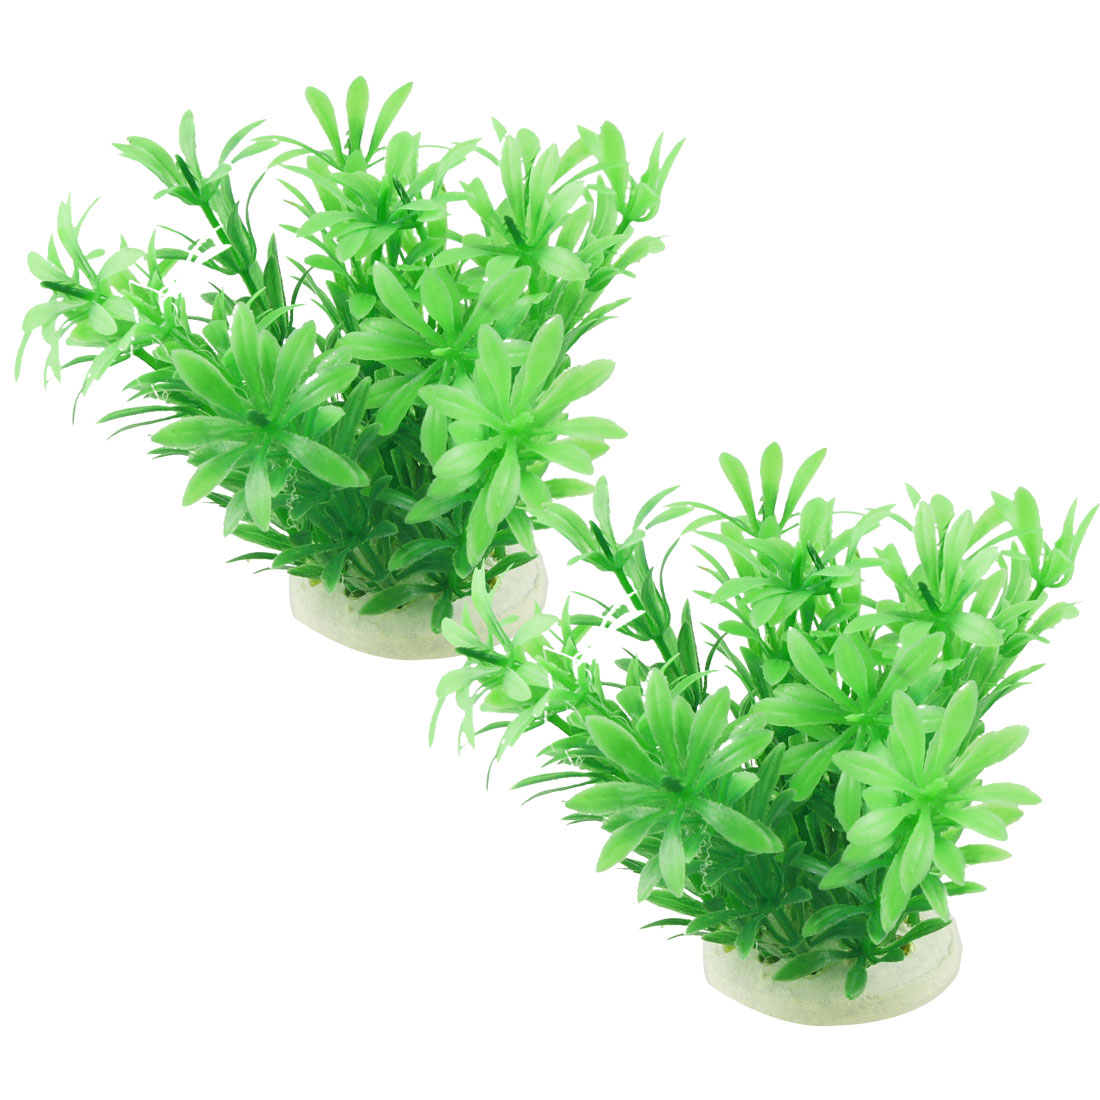 "4.1"" Height 2 Pcs Ceramic Base Emulational Plant Grass for Aquarium Fish Tank Green"